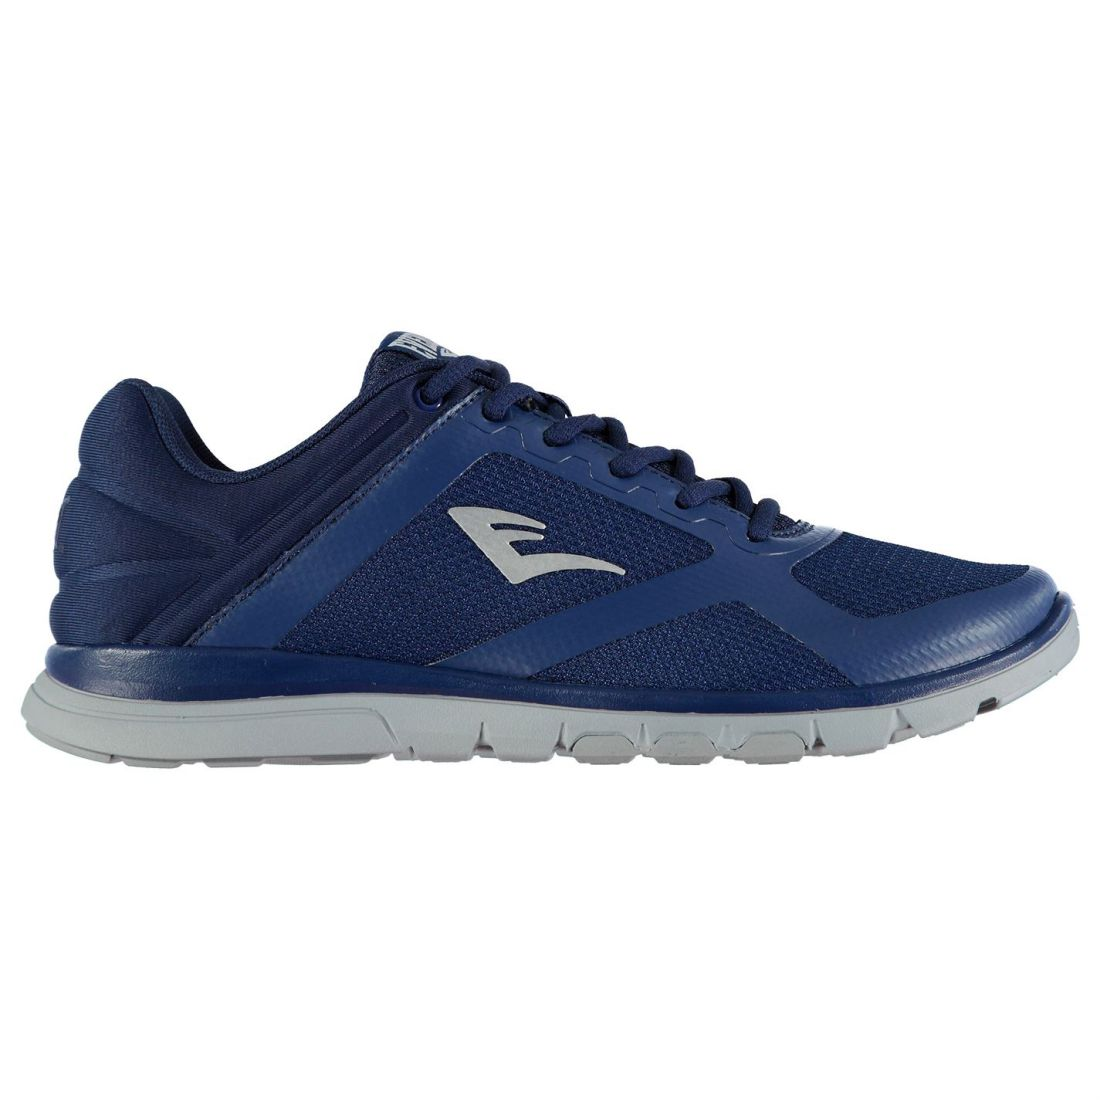 a51c763ca668 Everlast Basic Flex Sneakers Mens Gents Sport Activity Shoes Laces Fastened  2 2 di 4 ...